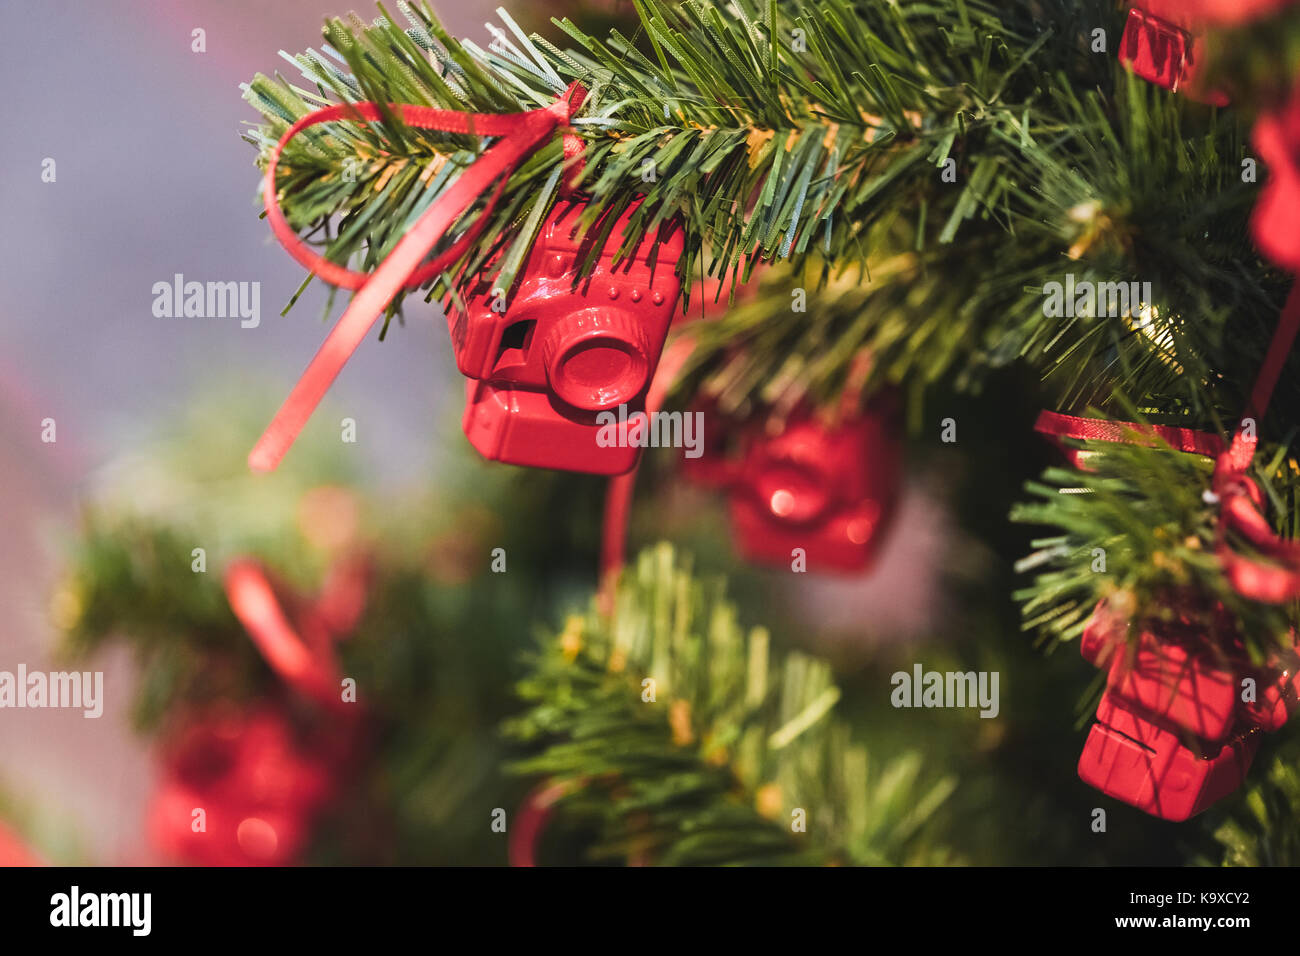 Christmas tree decorated with small figures of red photo cameras - Stock Image